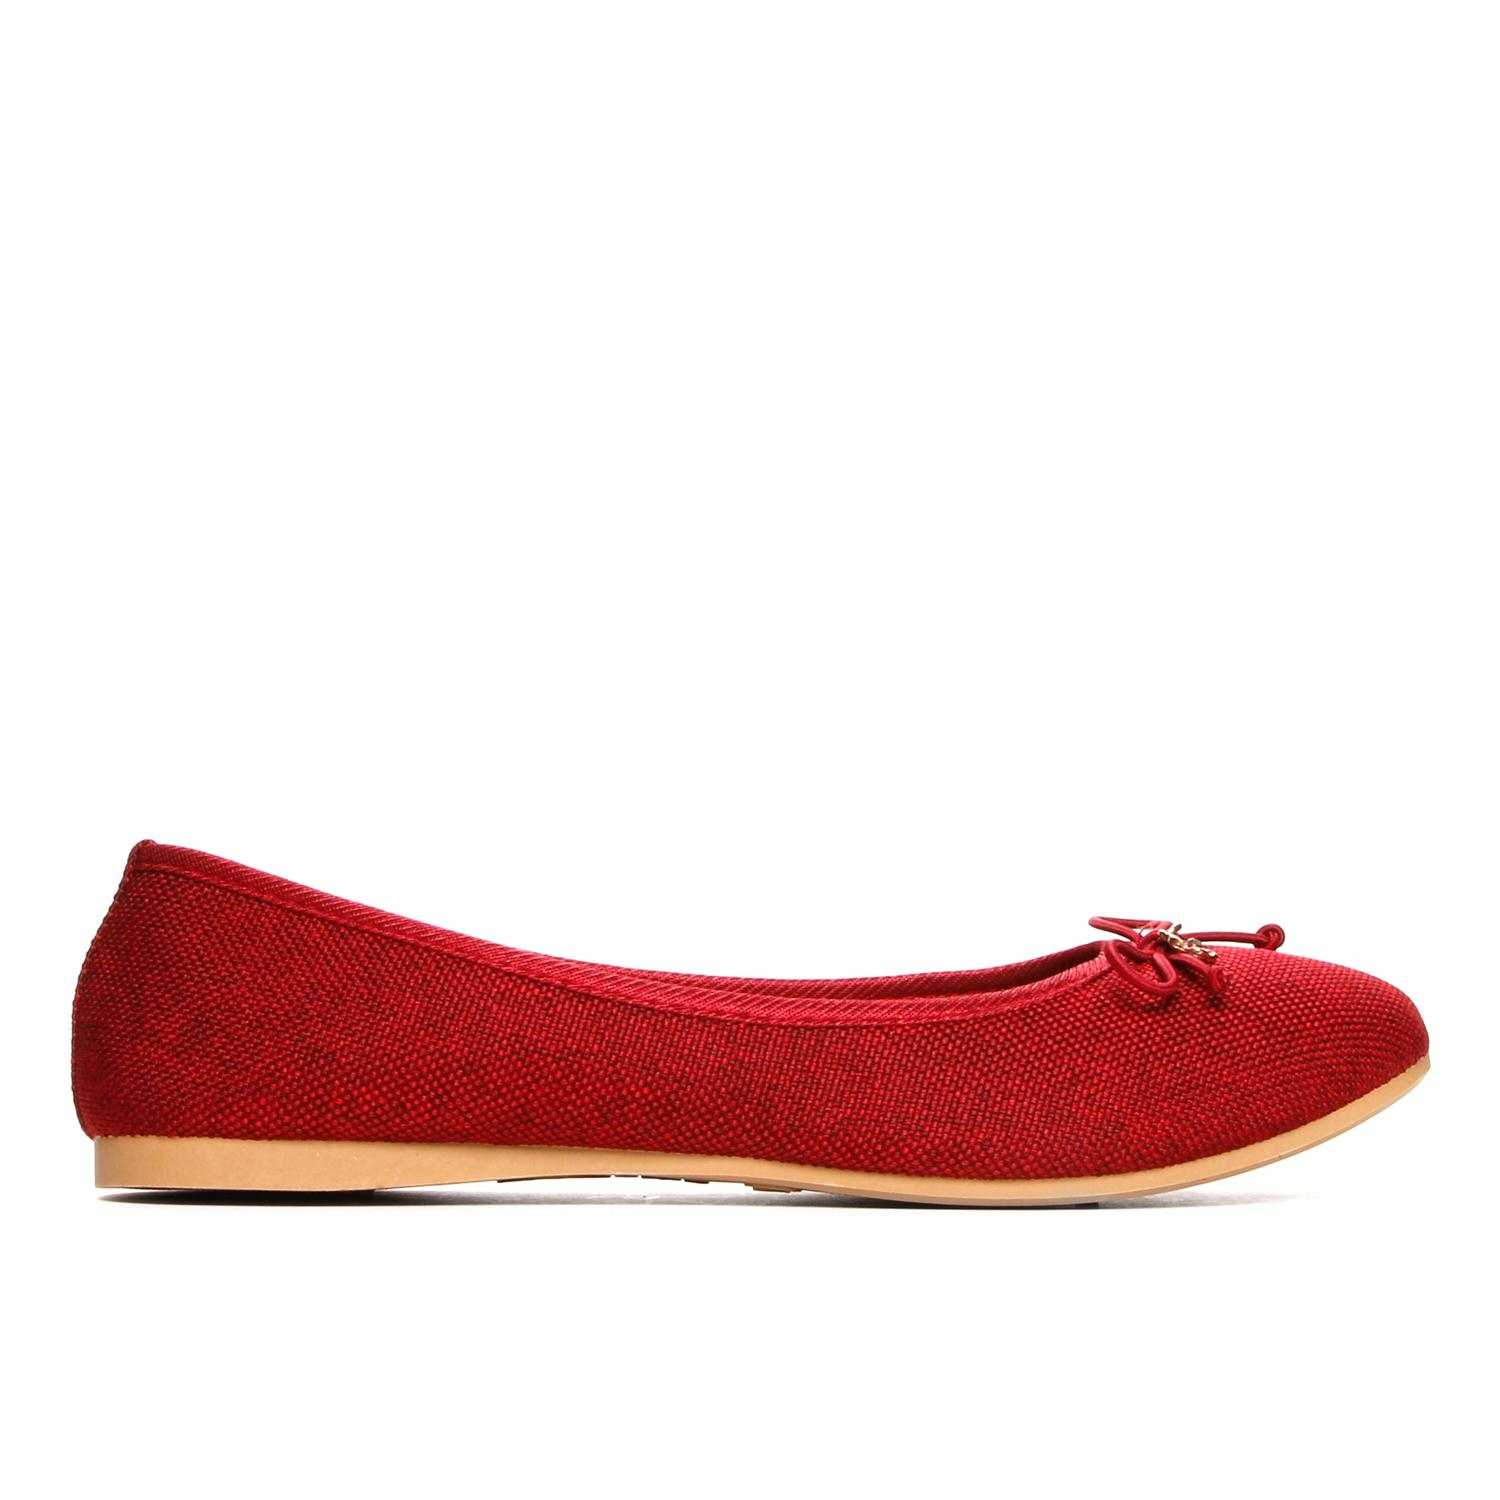 b810b5341d Product details of Solemate Ladies Rosie Ballet Flats in Red